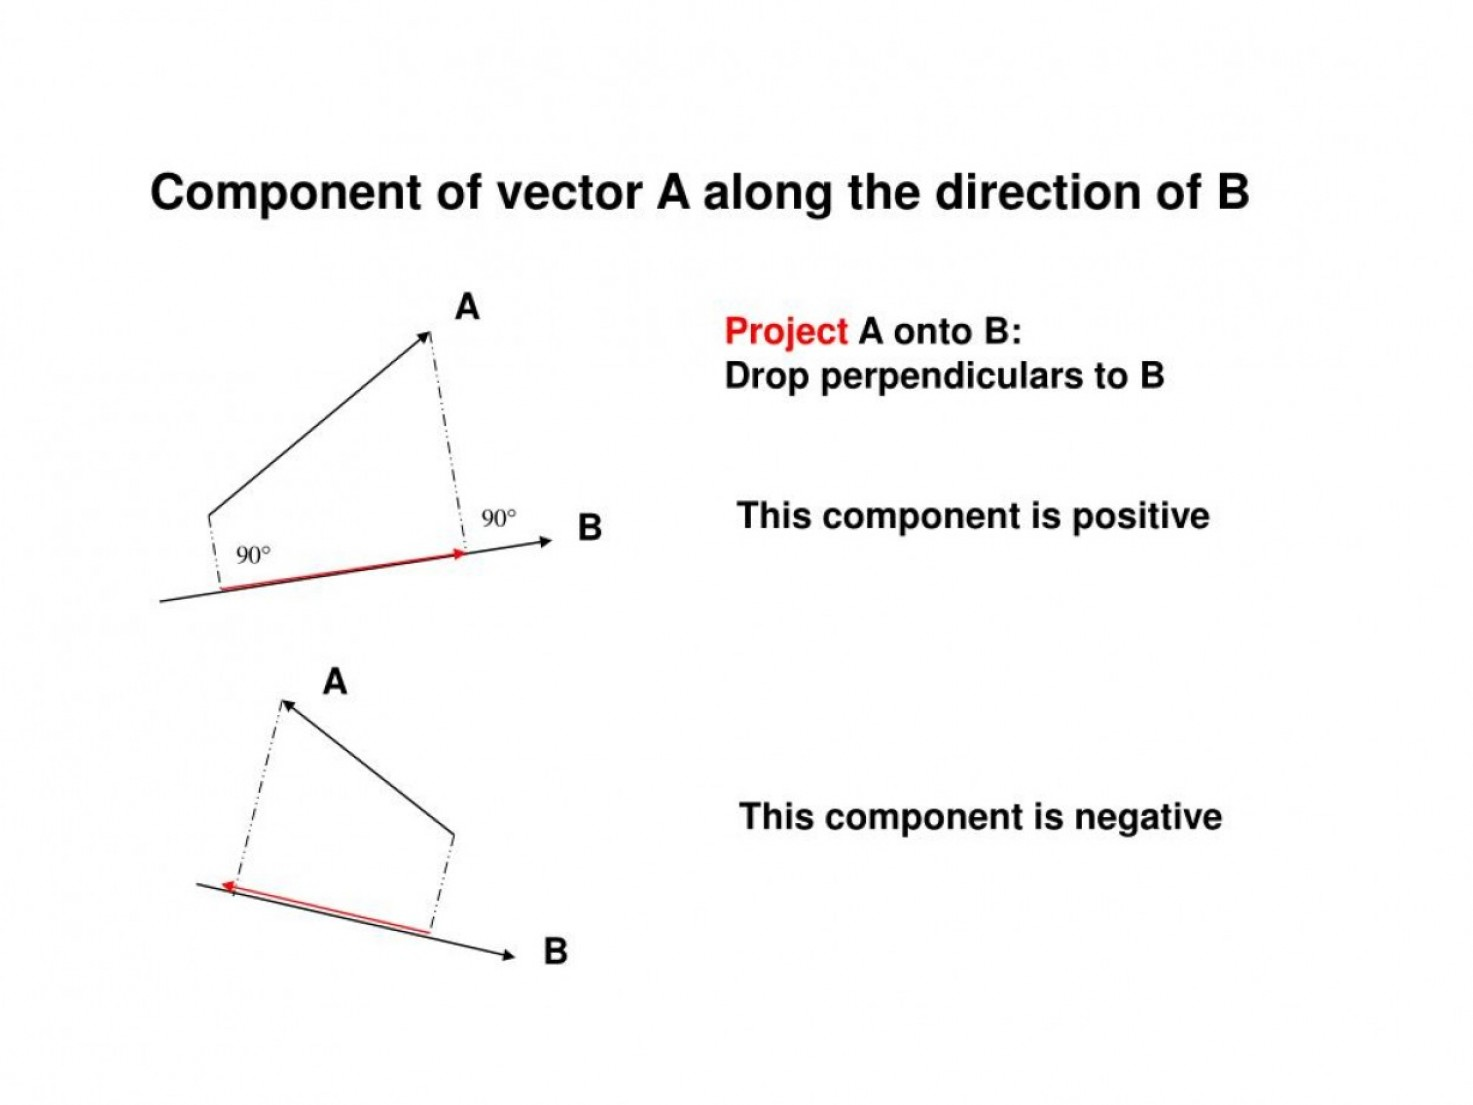 Adding Vectors Using Components: Component Of Vector A Along The Direction Of B